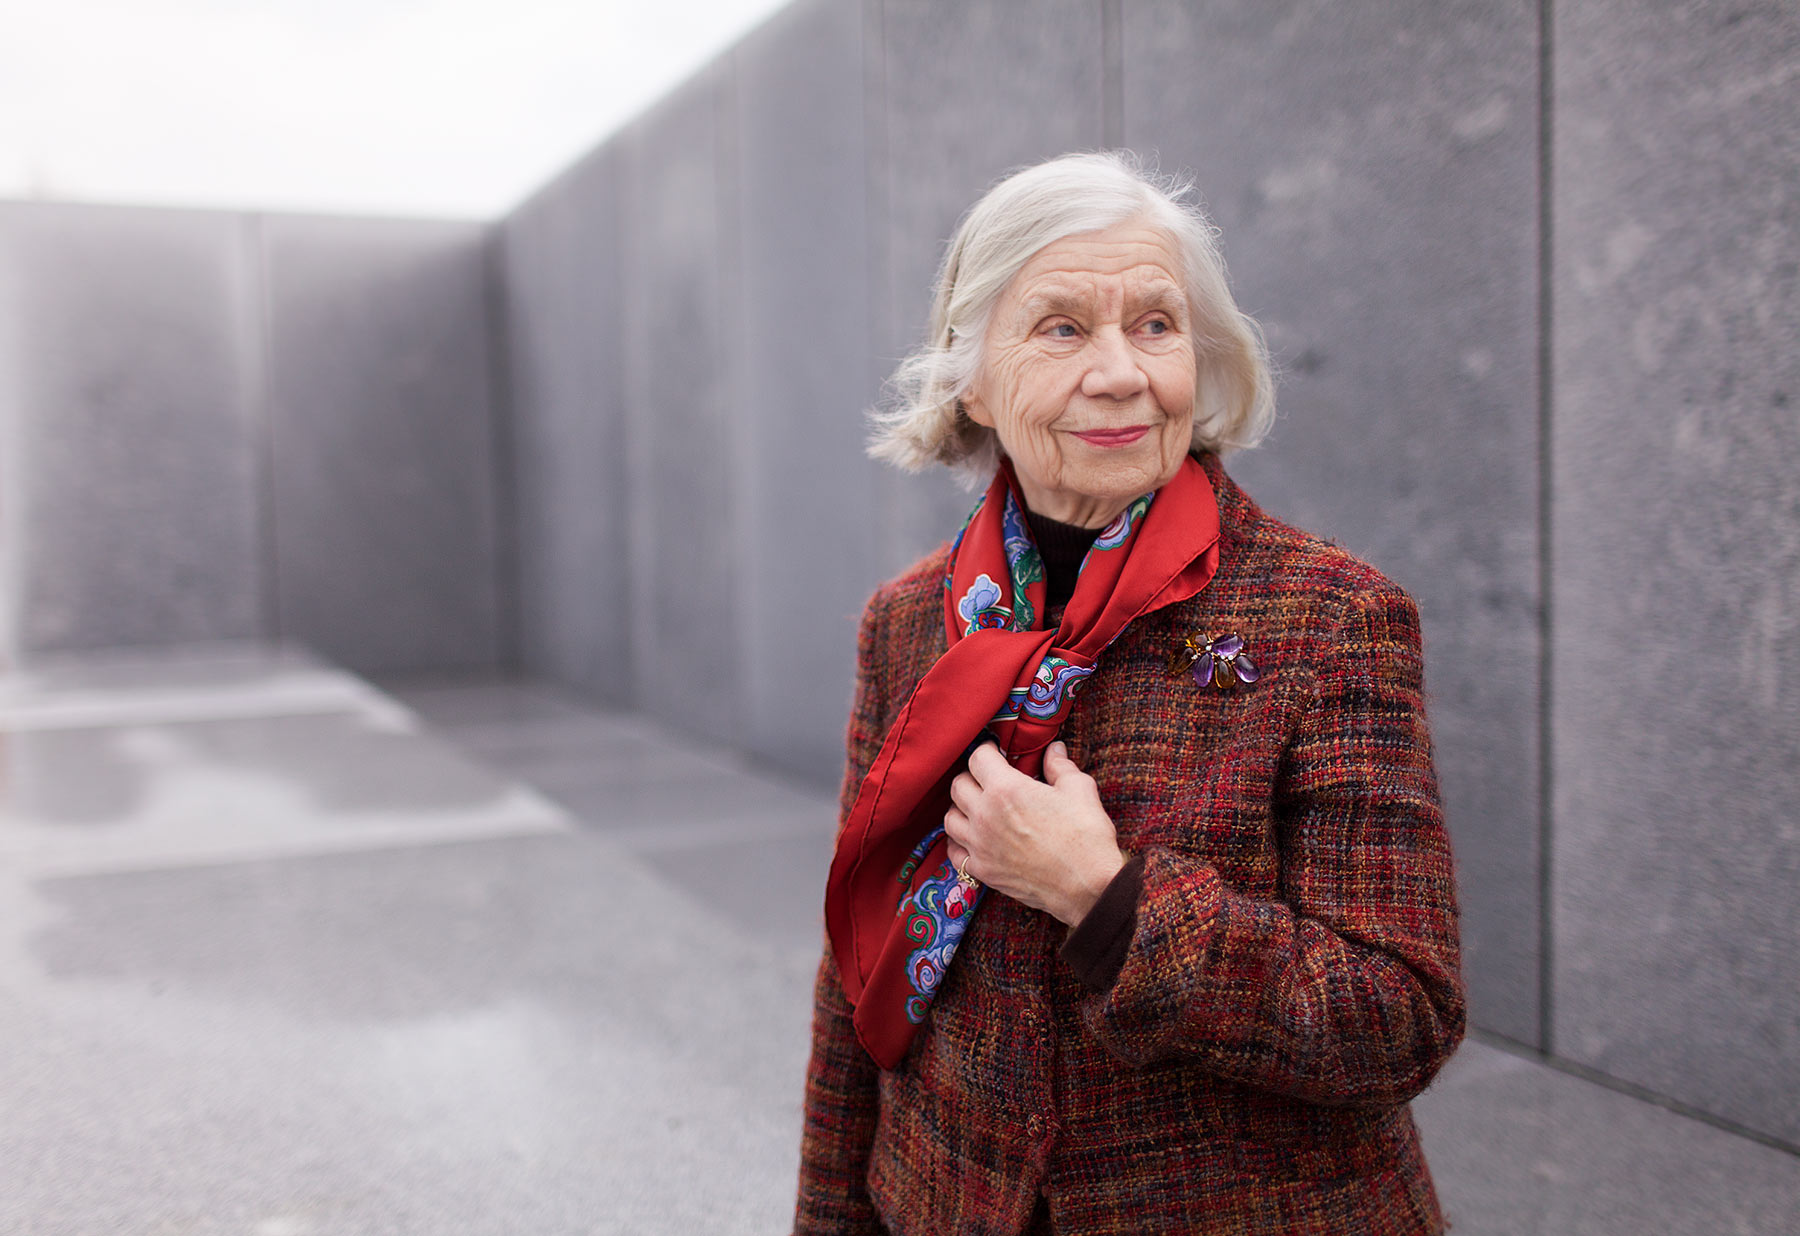 Don Hamerman Portraits - Harriet Pattison - Louis Kahn